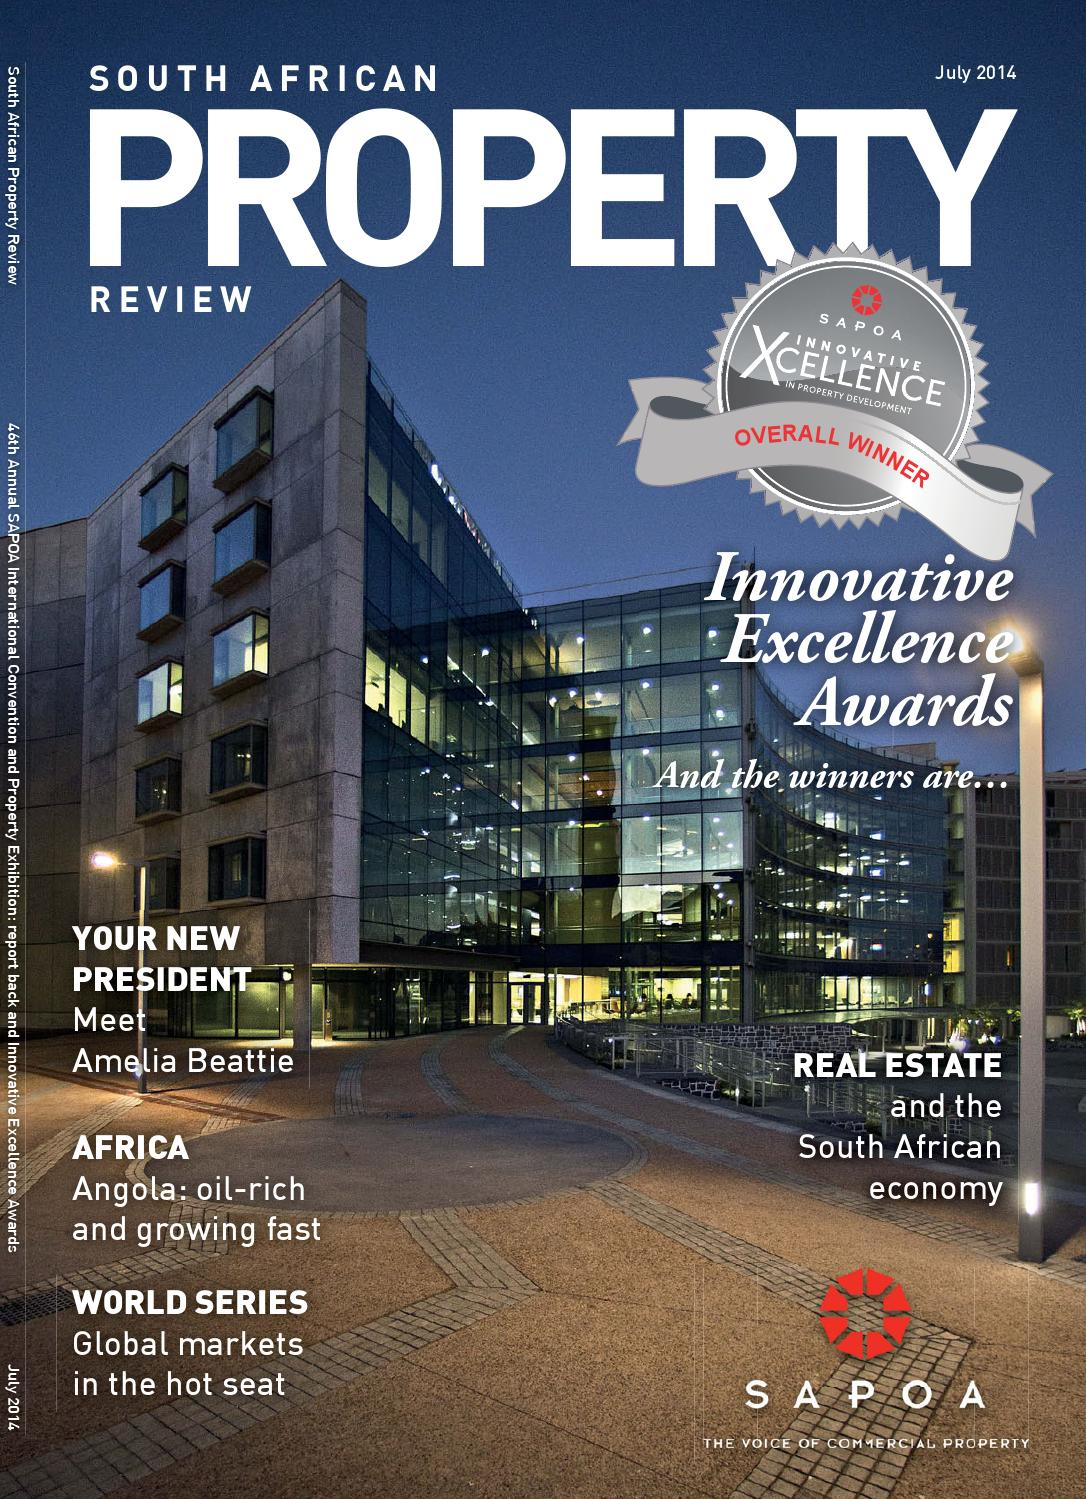 a5228539cd6 South African Property Review July 2014 by SAPOA - issuu